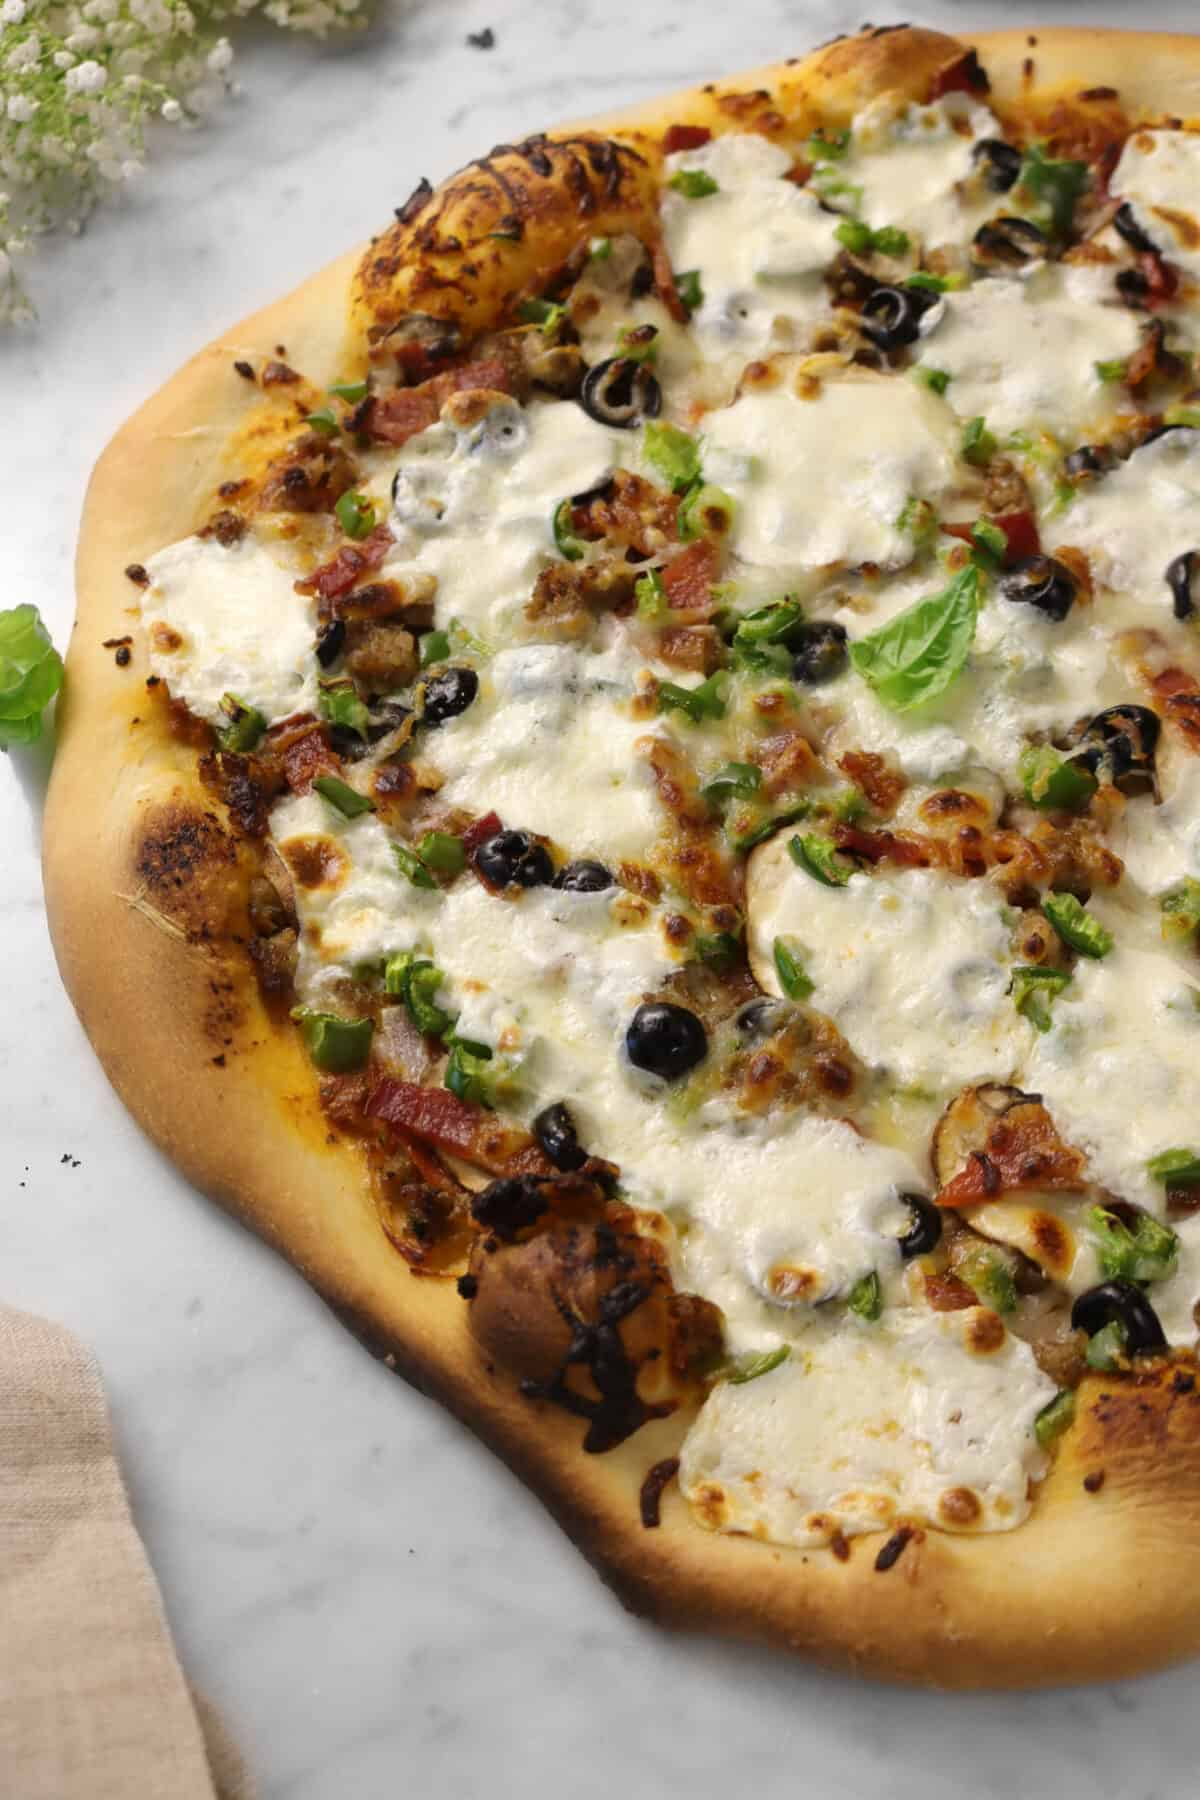 supreme pizza on a marble counter with basil leaves and white flowers